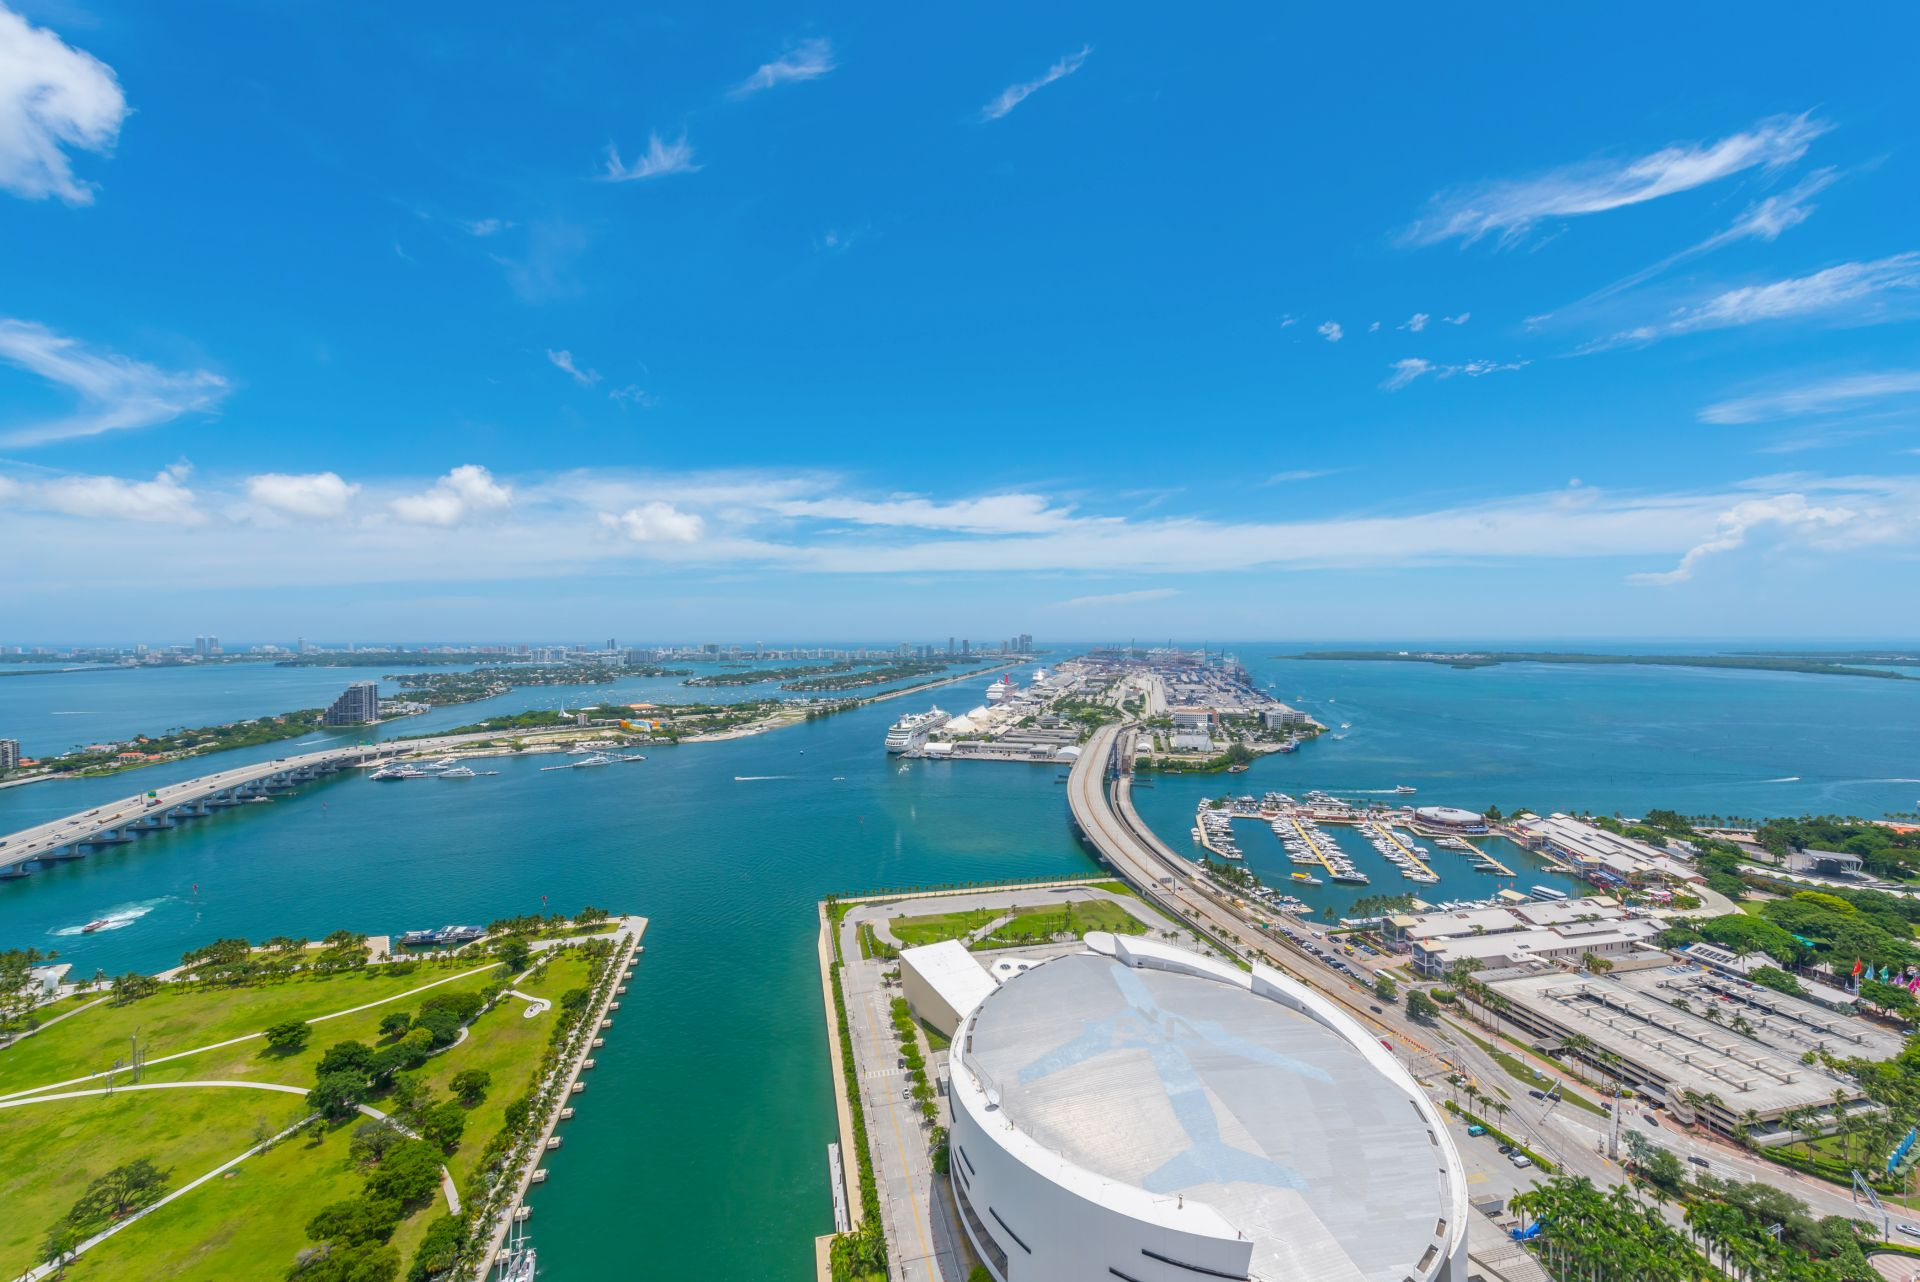 MarinaBlue View of Biscayne Bay